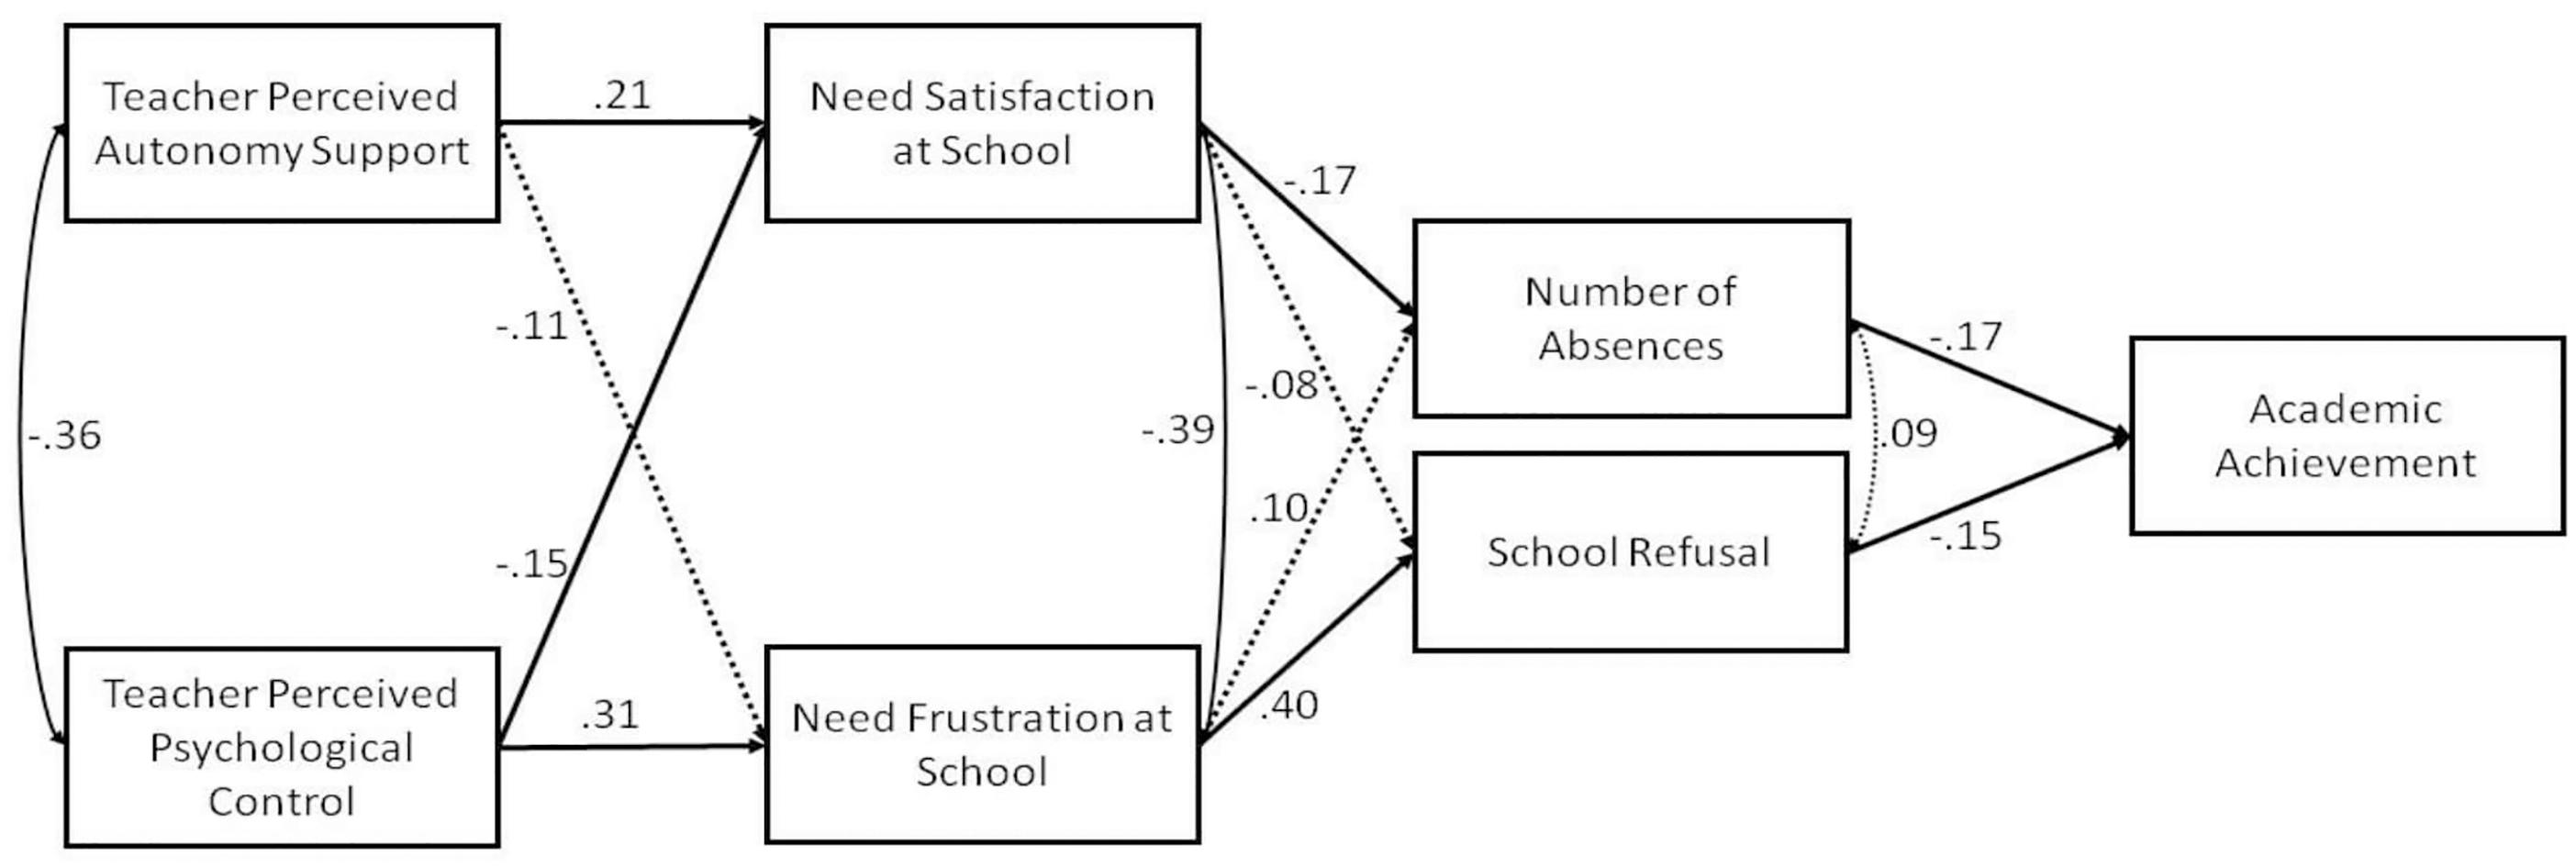 Frontiers | School Refusal and Absenteeism: Perception of